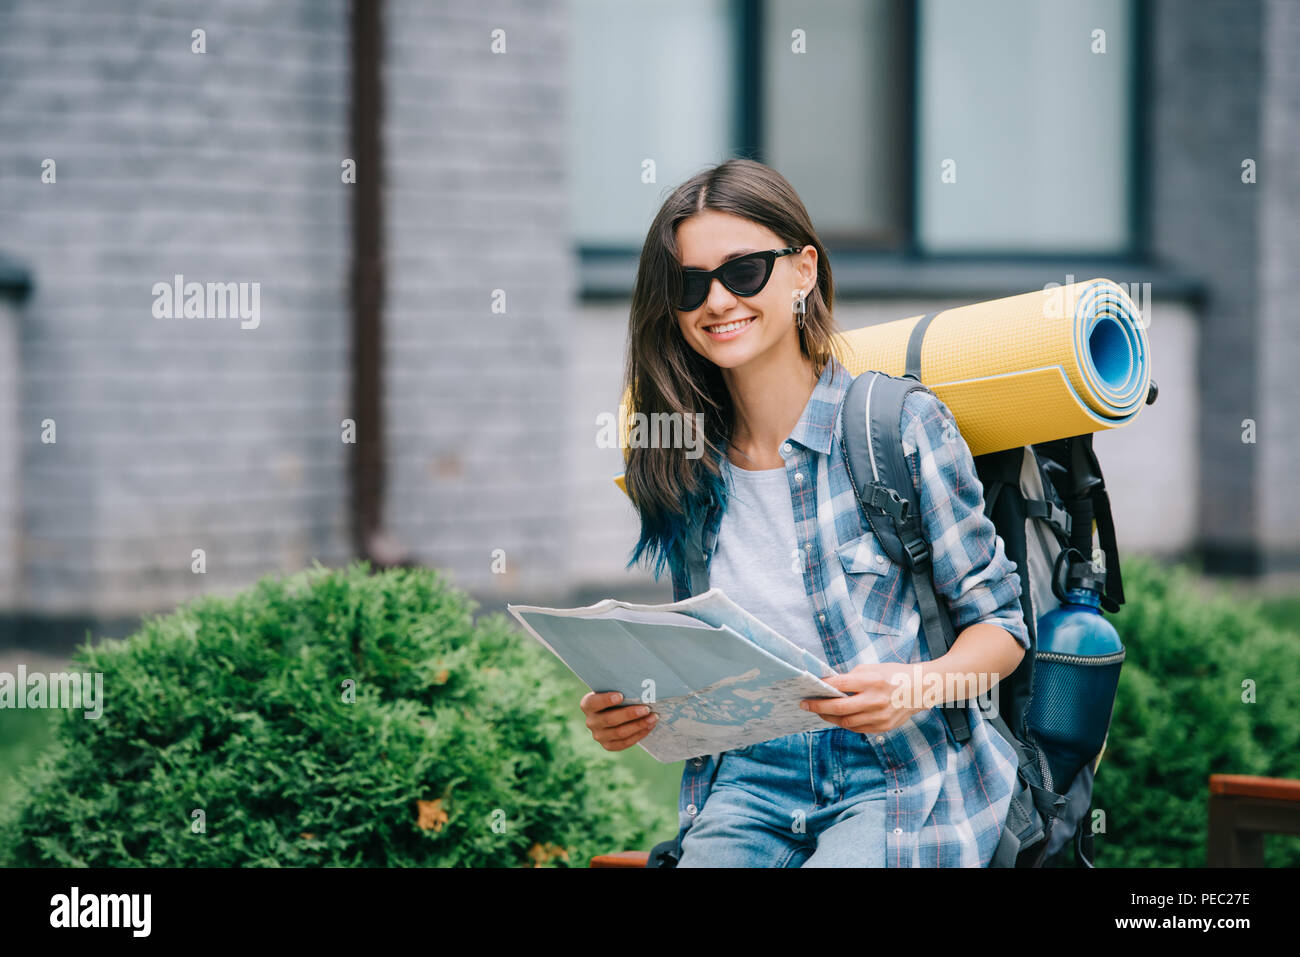 happy young woman with backpack holding map and smiling at camera - Stock Image